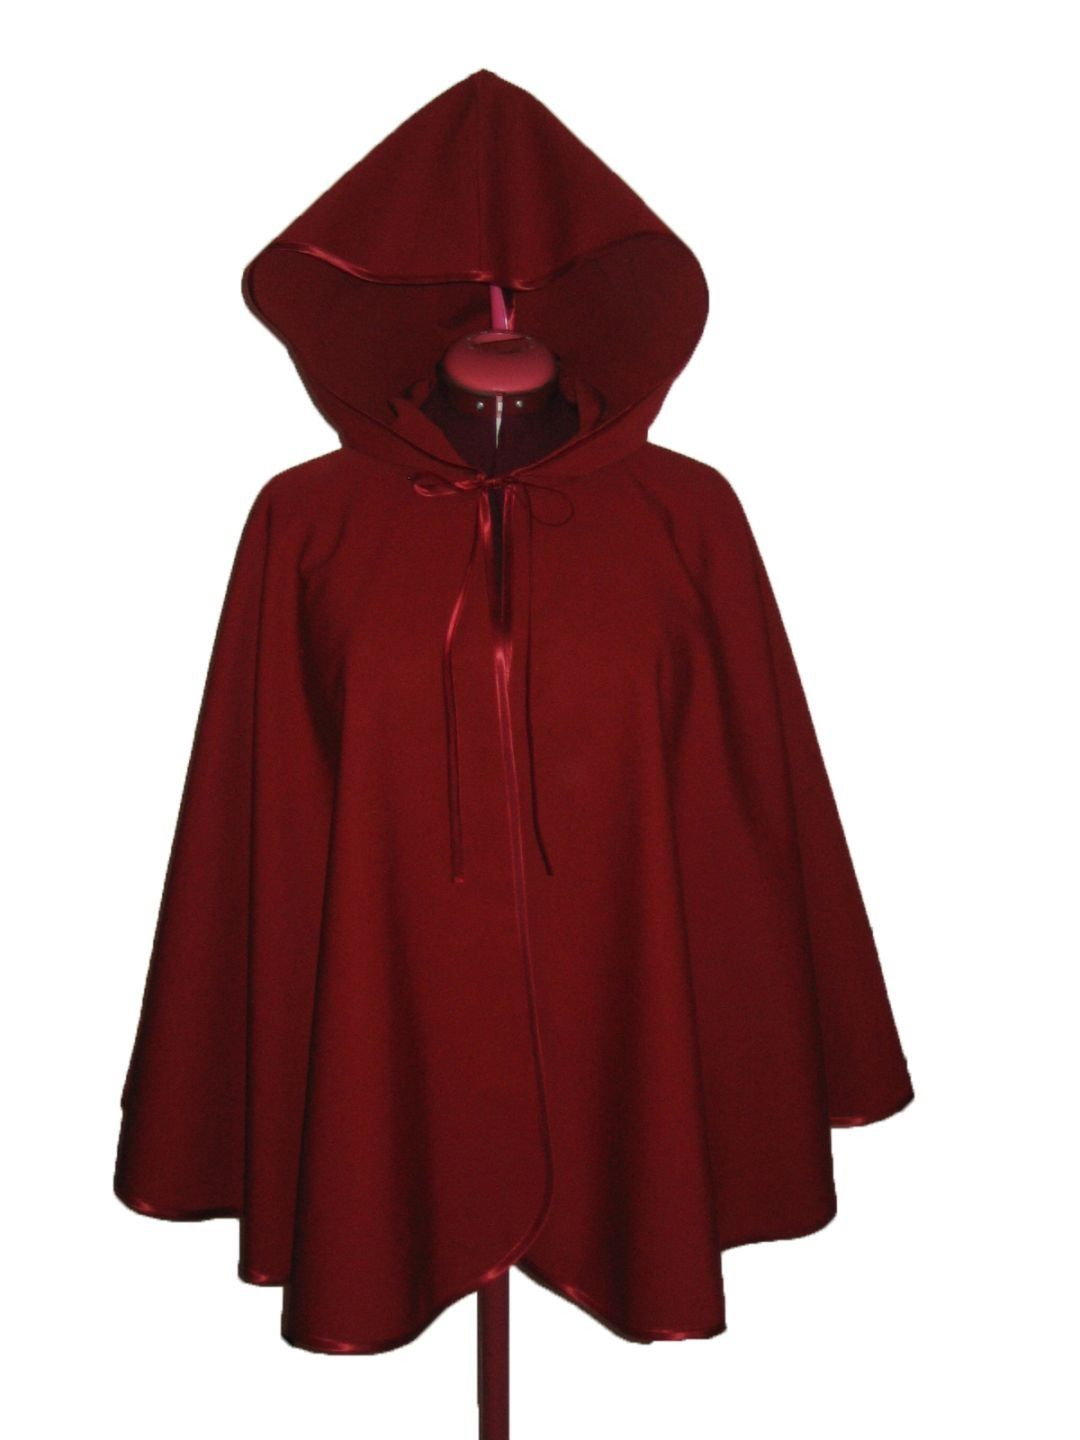 cape de pluie 100 impermeable bordeaux manteau blouson veste par gwaelonna cape de pluie. Black Bedroom Furniture Sets. Home Design Ideas